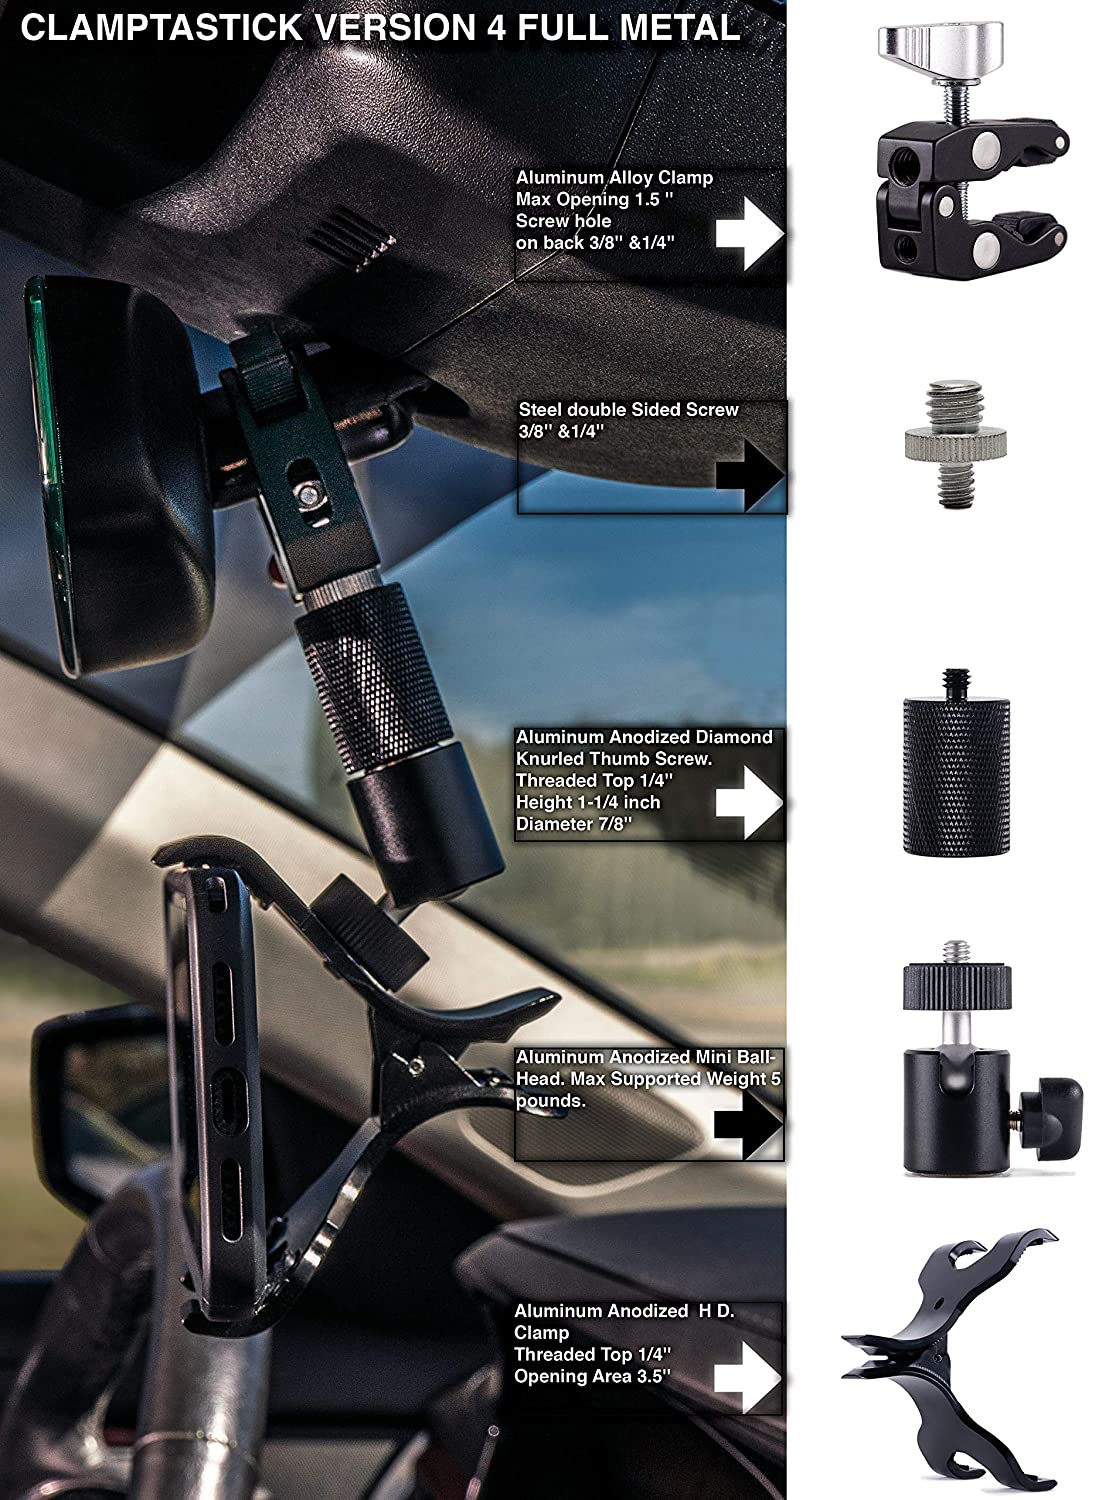 Universal Cell Phone Holder for mounting on Rearview Mirror Compatible with Mobile iOS Devices Black - Version 4 Full Metal Android Smartphone GPS and More. Clamptastick !